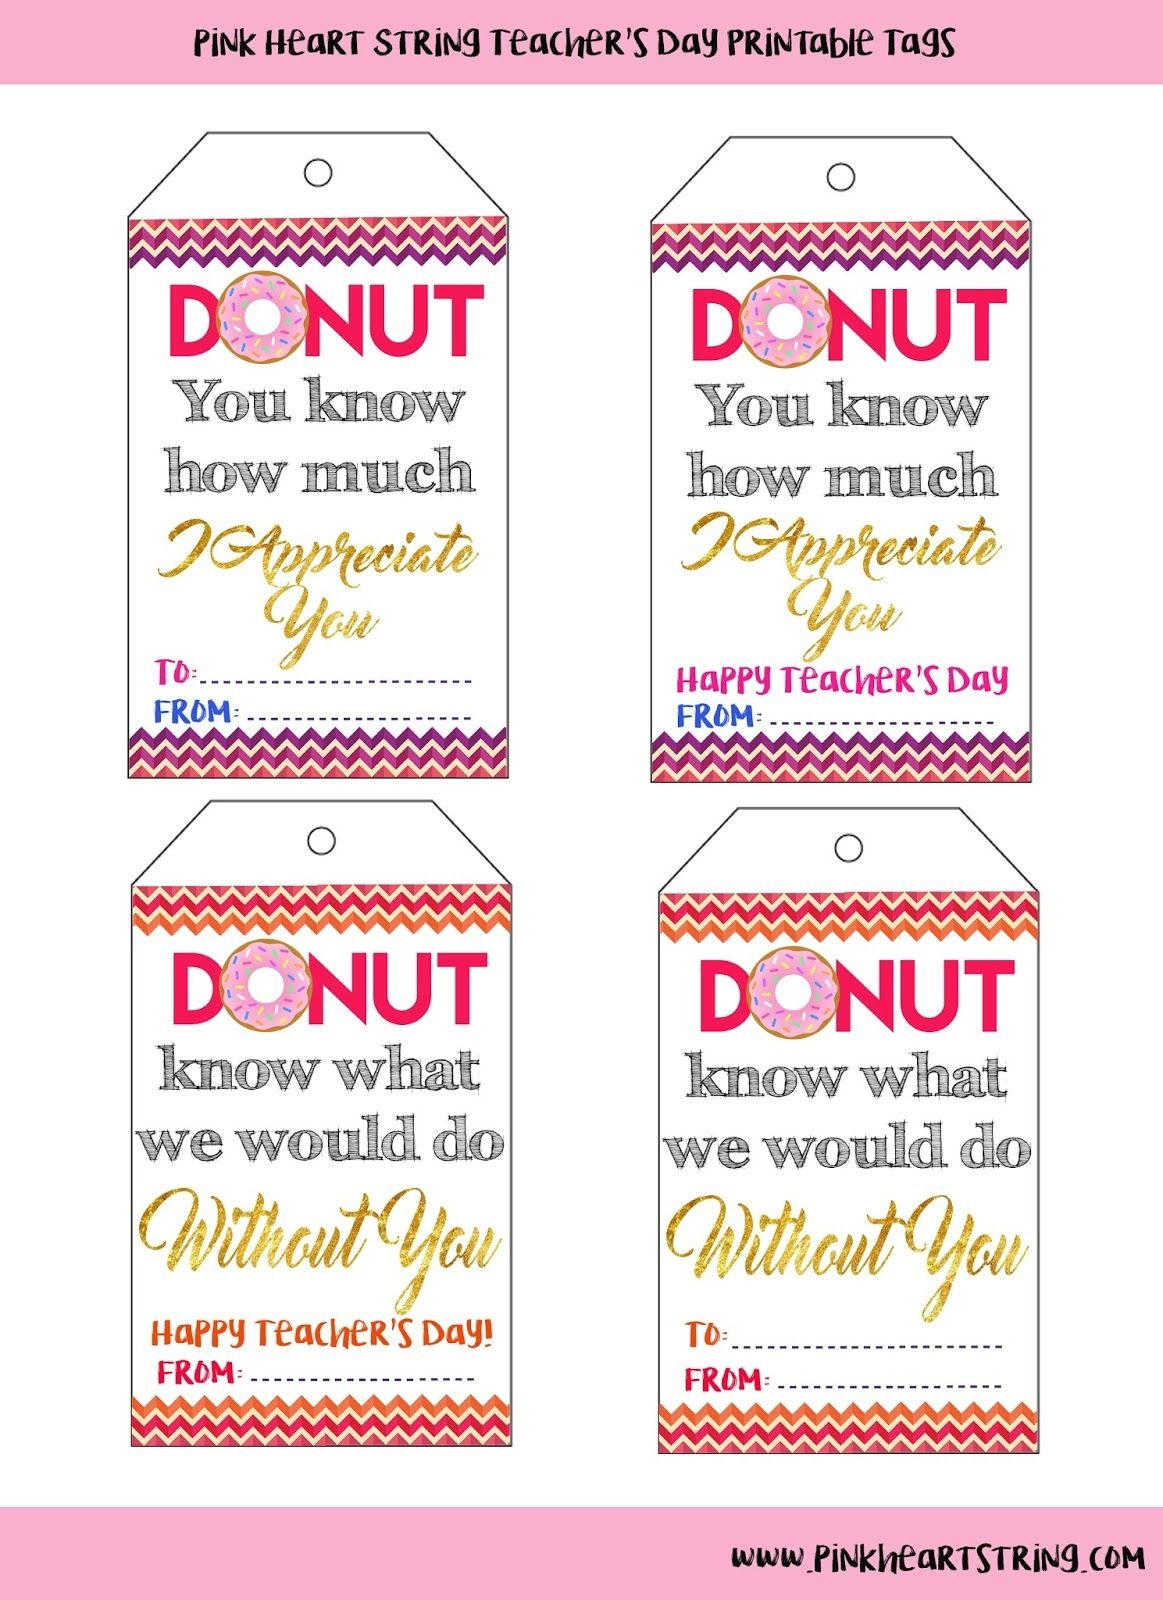 Print This Free Teacher Appreciation Printables Pdf If You Are - Free Printable Tags For Teacher Appreciation